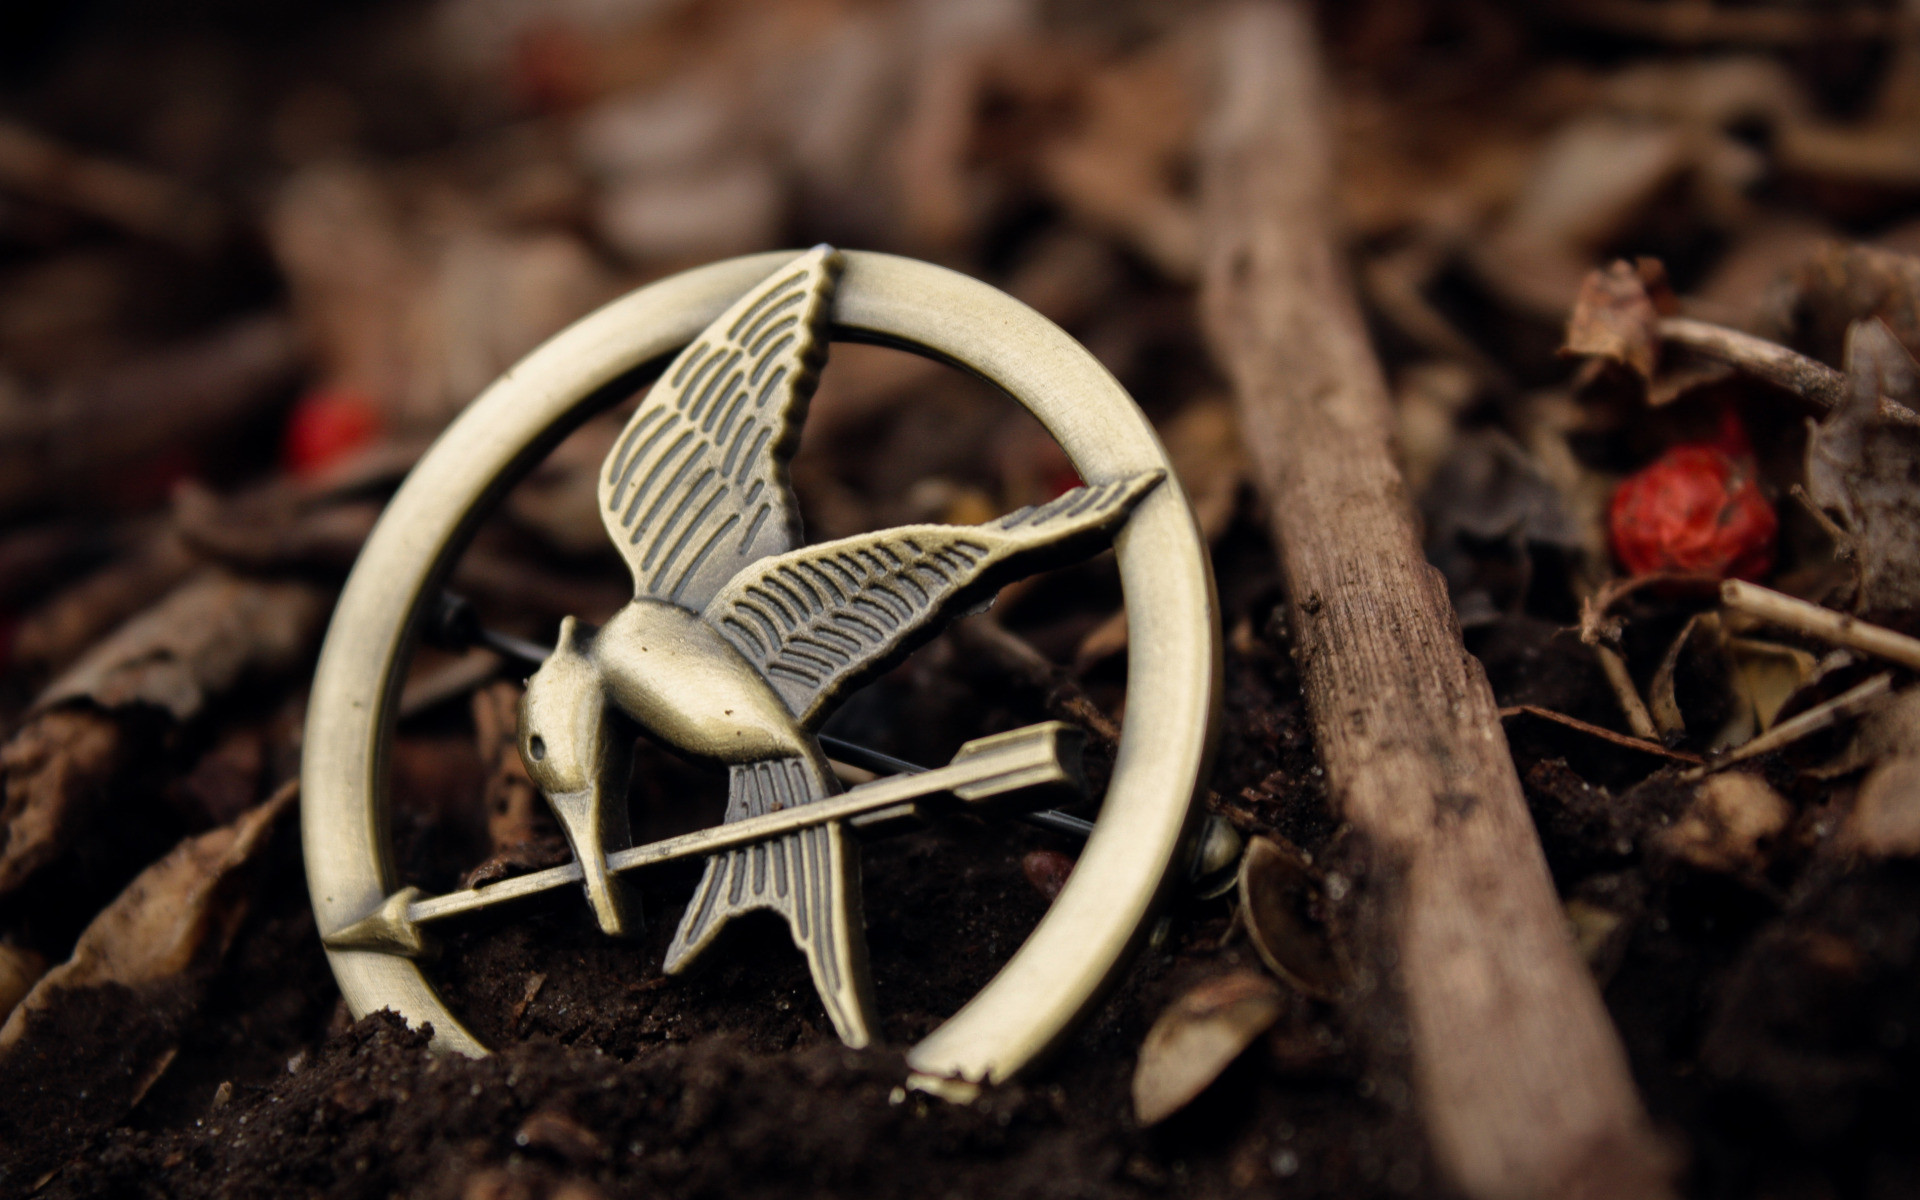 1920x1200 Hunger Games Mockingjay Wallpaper